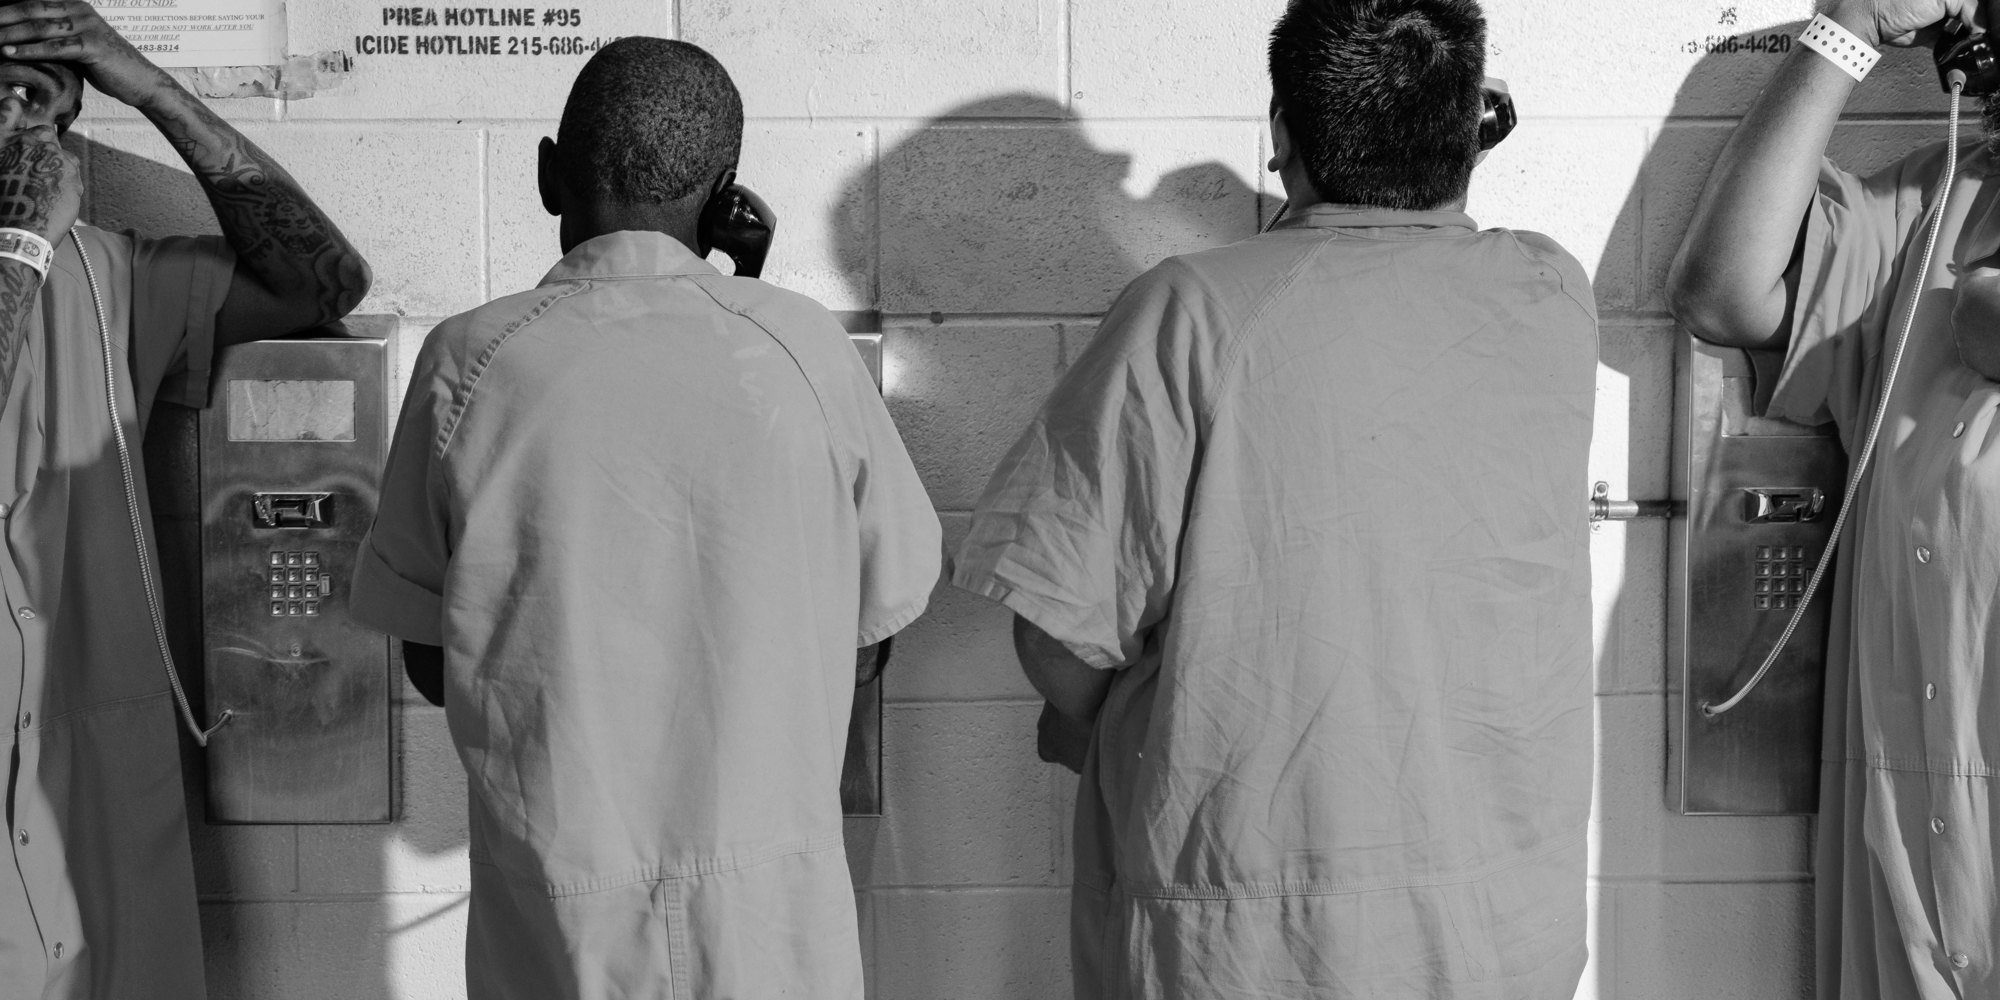 Prisoners at the Curran-Fromhold Correctional Facility in Philadelphia. The idea of prison abolition has gained traction among criminal justice reformers.